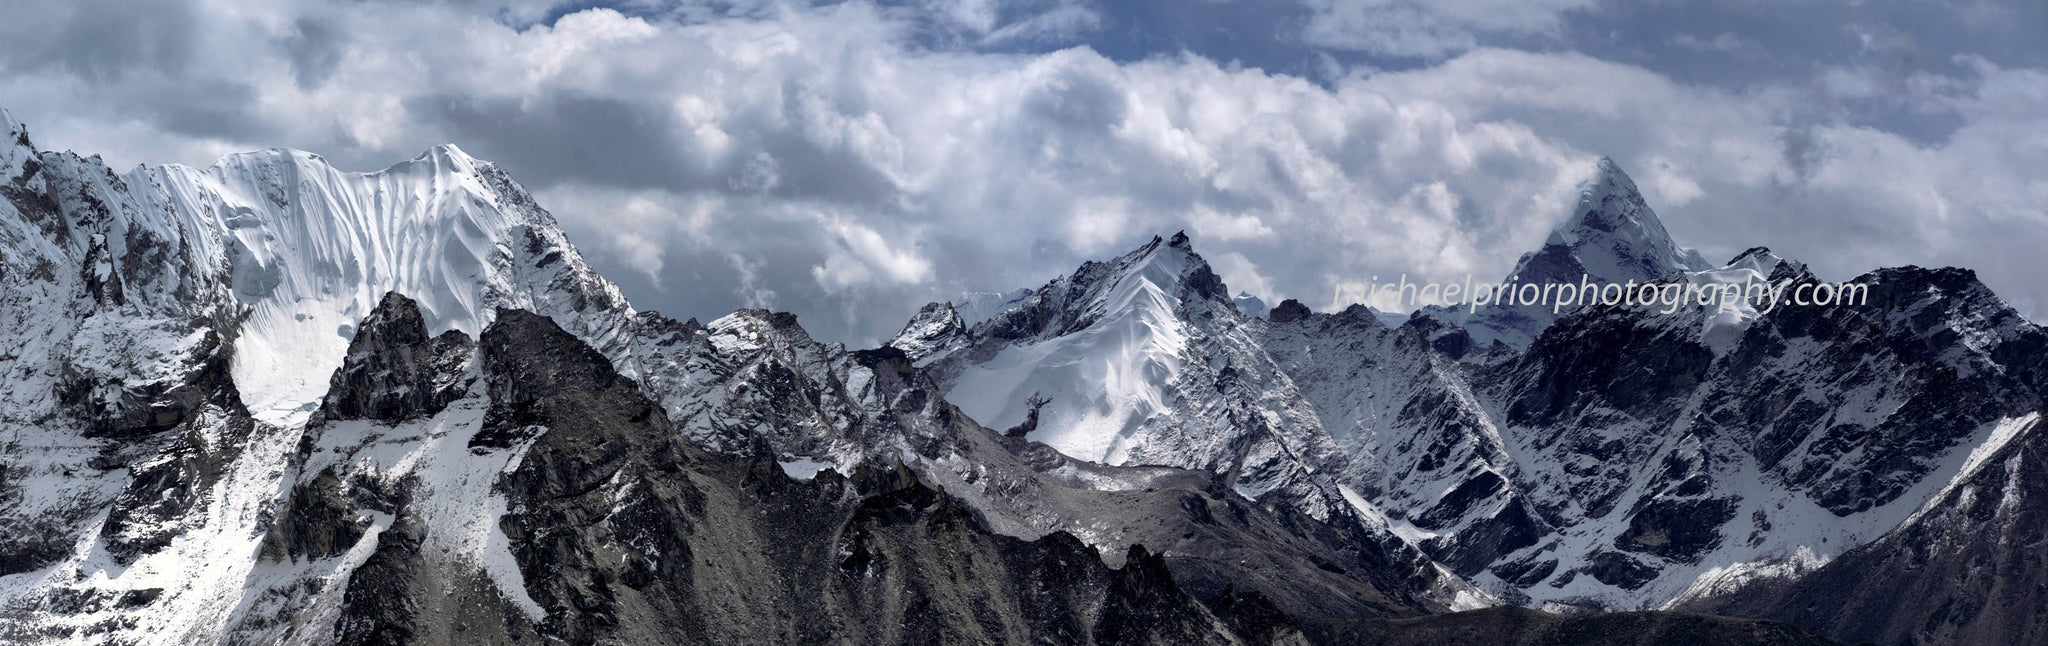 The Himalaya's With Ama Dablam On The Right. - Michael Prior Photography